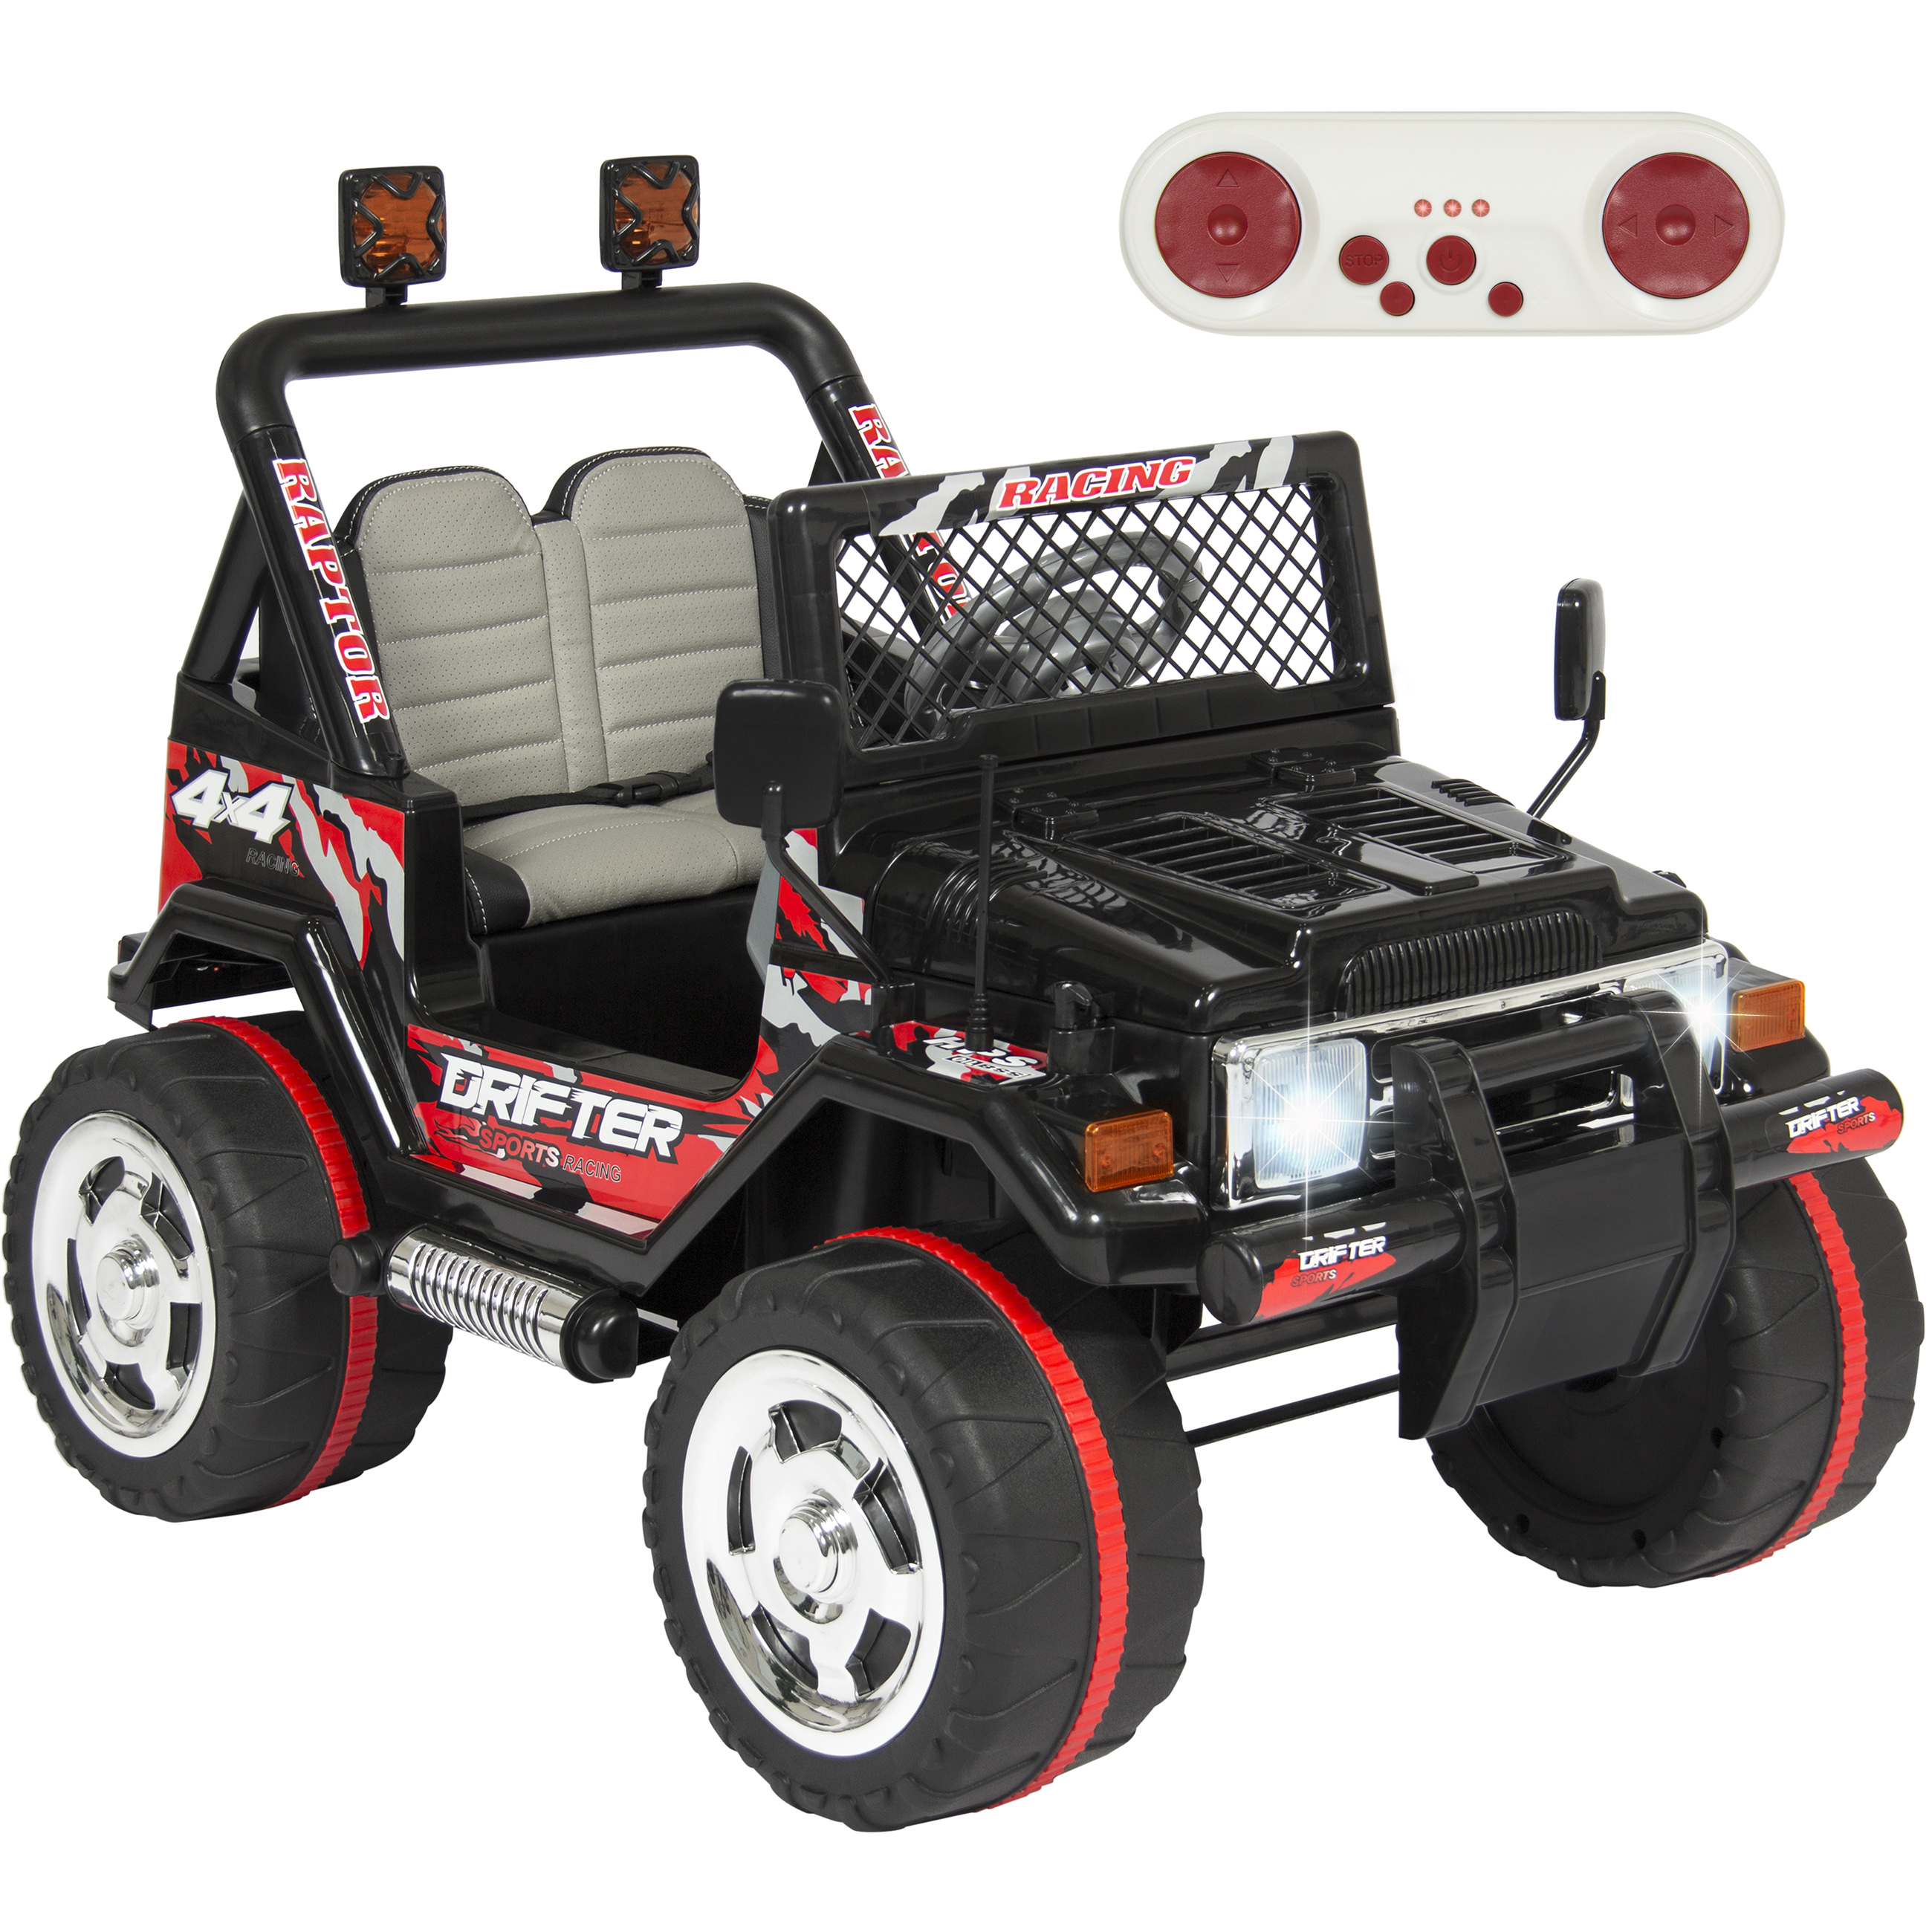 Jeep Wrangler Style 12V Ride On Car w/ Remote Control, Leather Seat, UV Lights, 2 Speeds- black